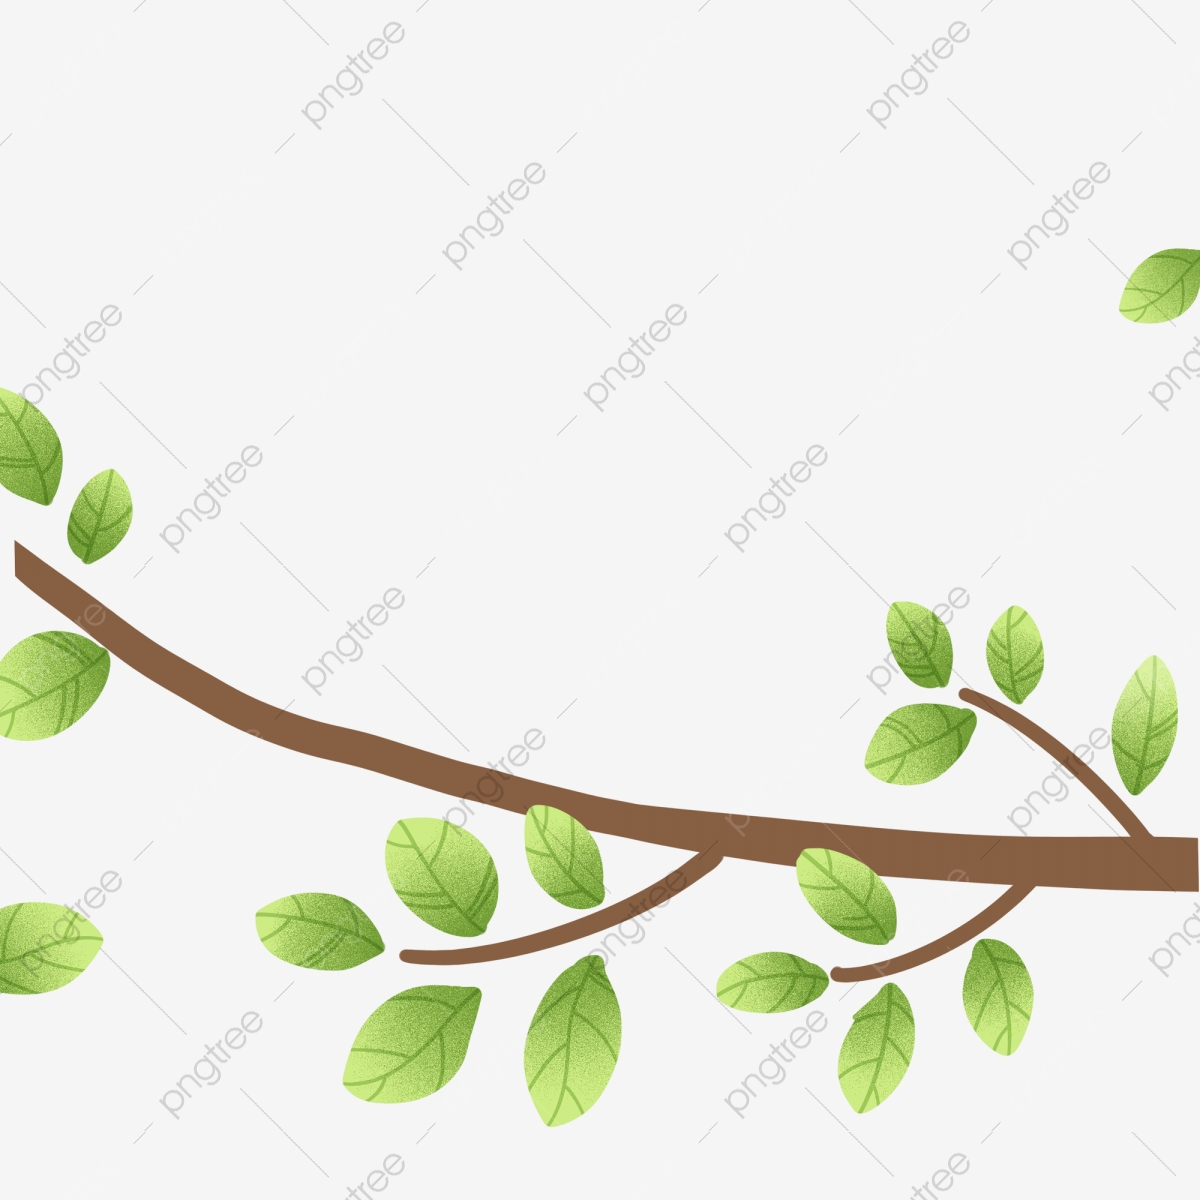 Cartoon Green Leaf Branch Free Illustration Cartoon Green Leaf Free Illustration Green Leaves On Cartoon Trees Png Transparent Clipart Image And Psd File For Free Download .mb (autodesk maya) free download this 3d objects and put it into your scene, use it for 3d visualization project, cg artwork or digital art, 3d rendering or other field. https pngtree com freepng cartoon green leaf branch free illustration 4494216 html